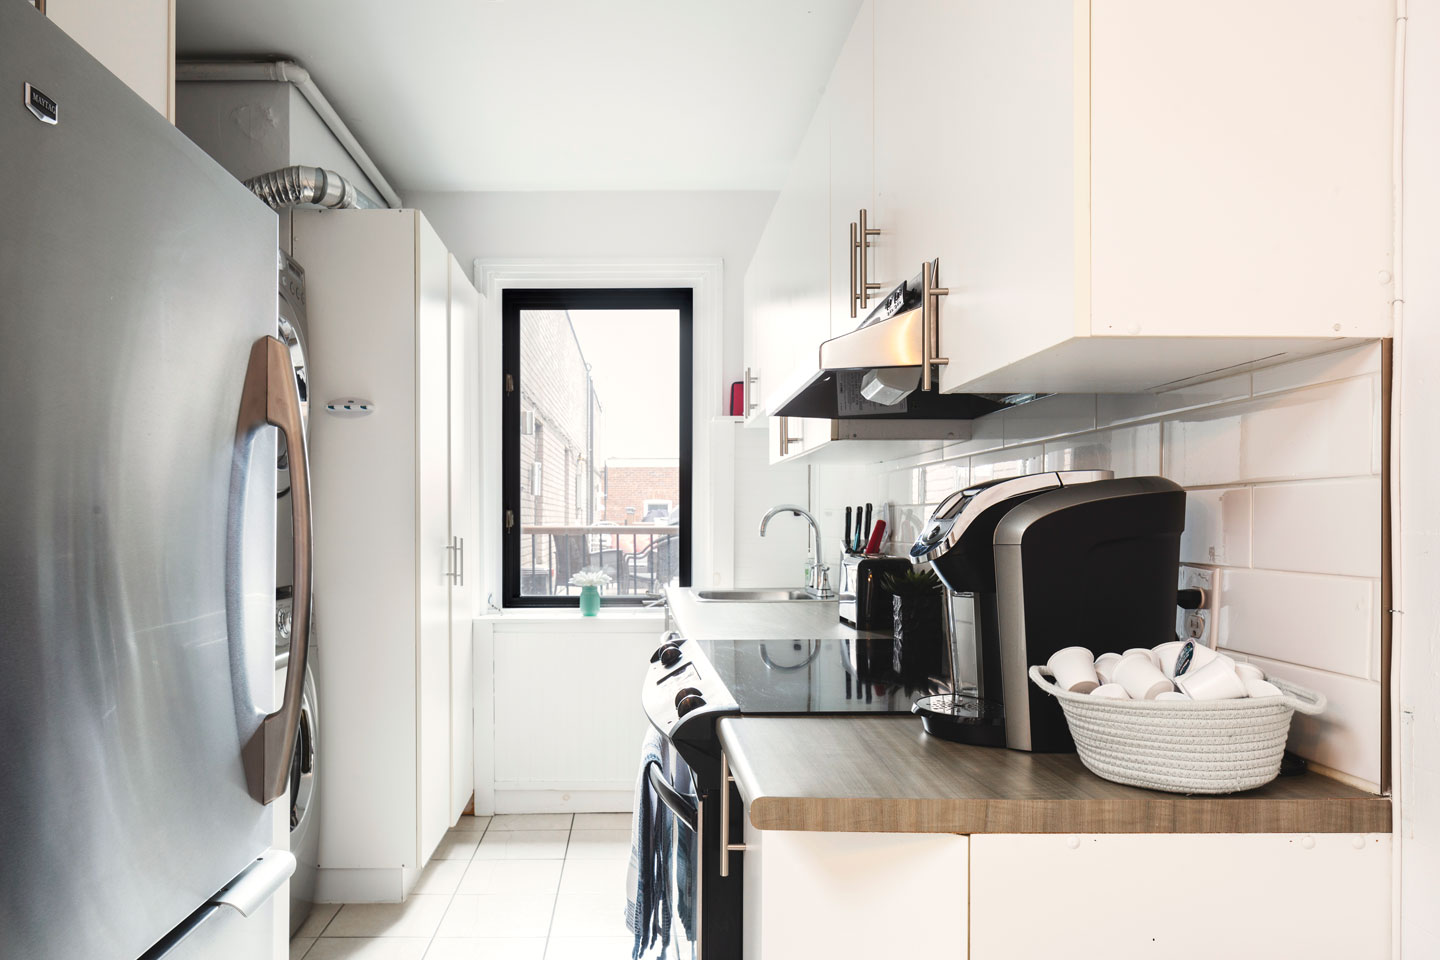 Golden kiss: fully equipped kitchen with Keurig coffee machine with pods provided